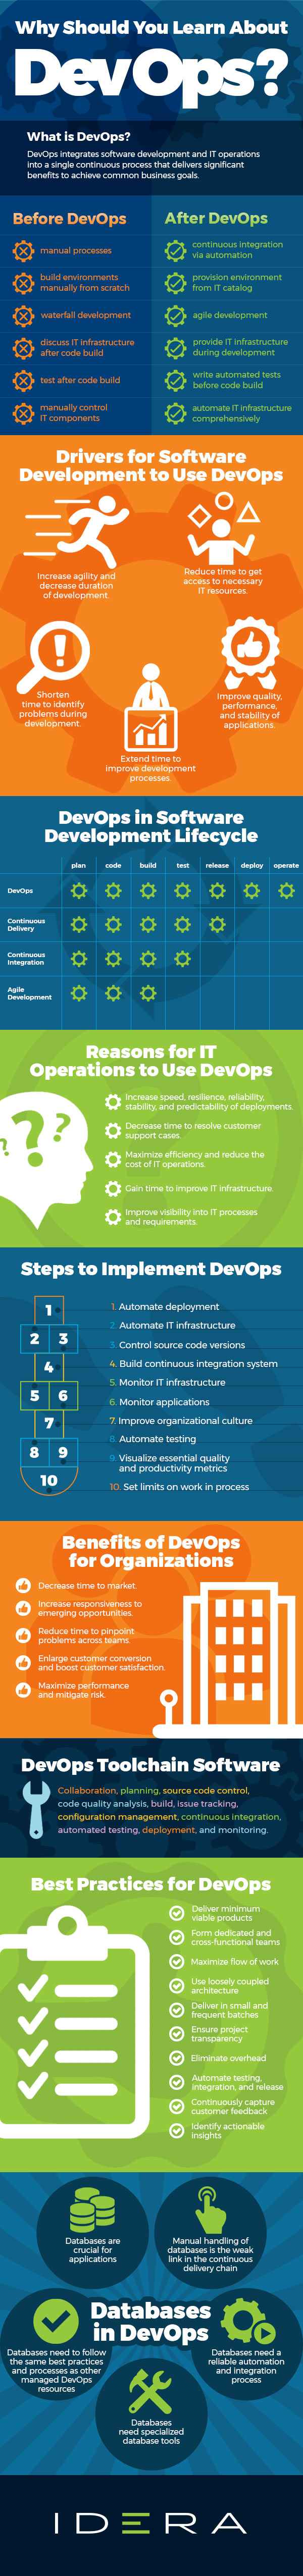 Why Should You Learn About DevOps